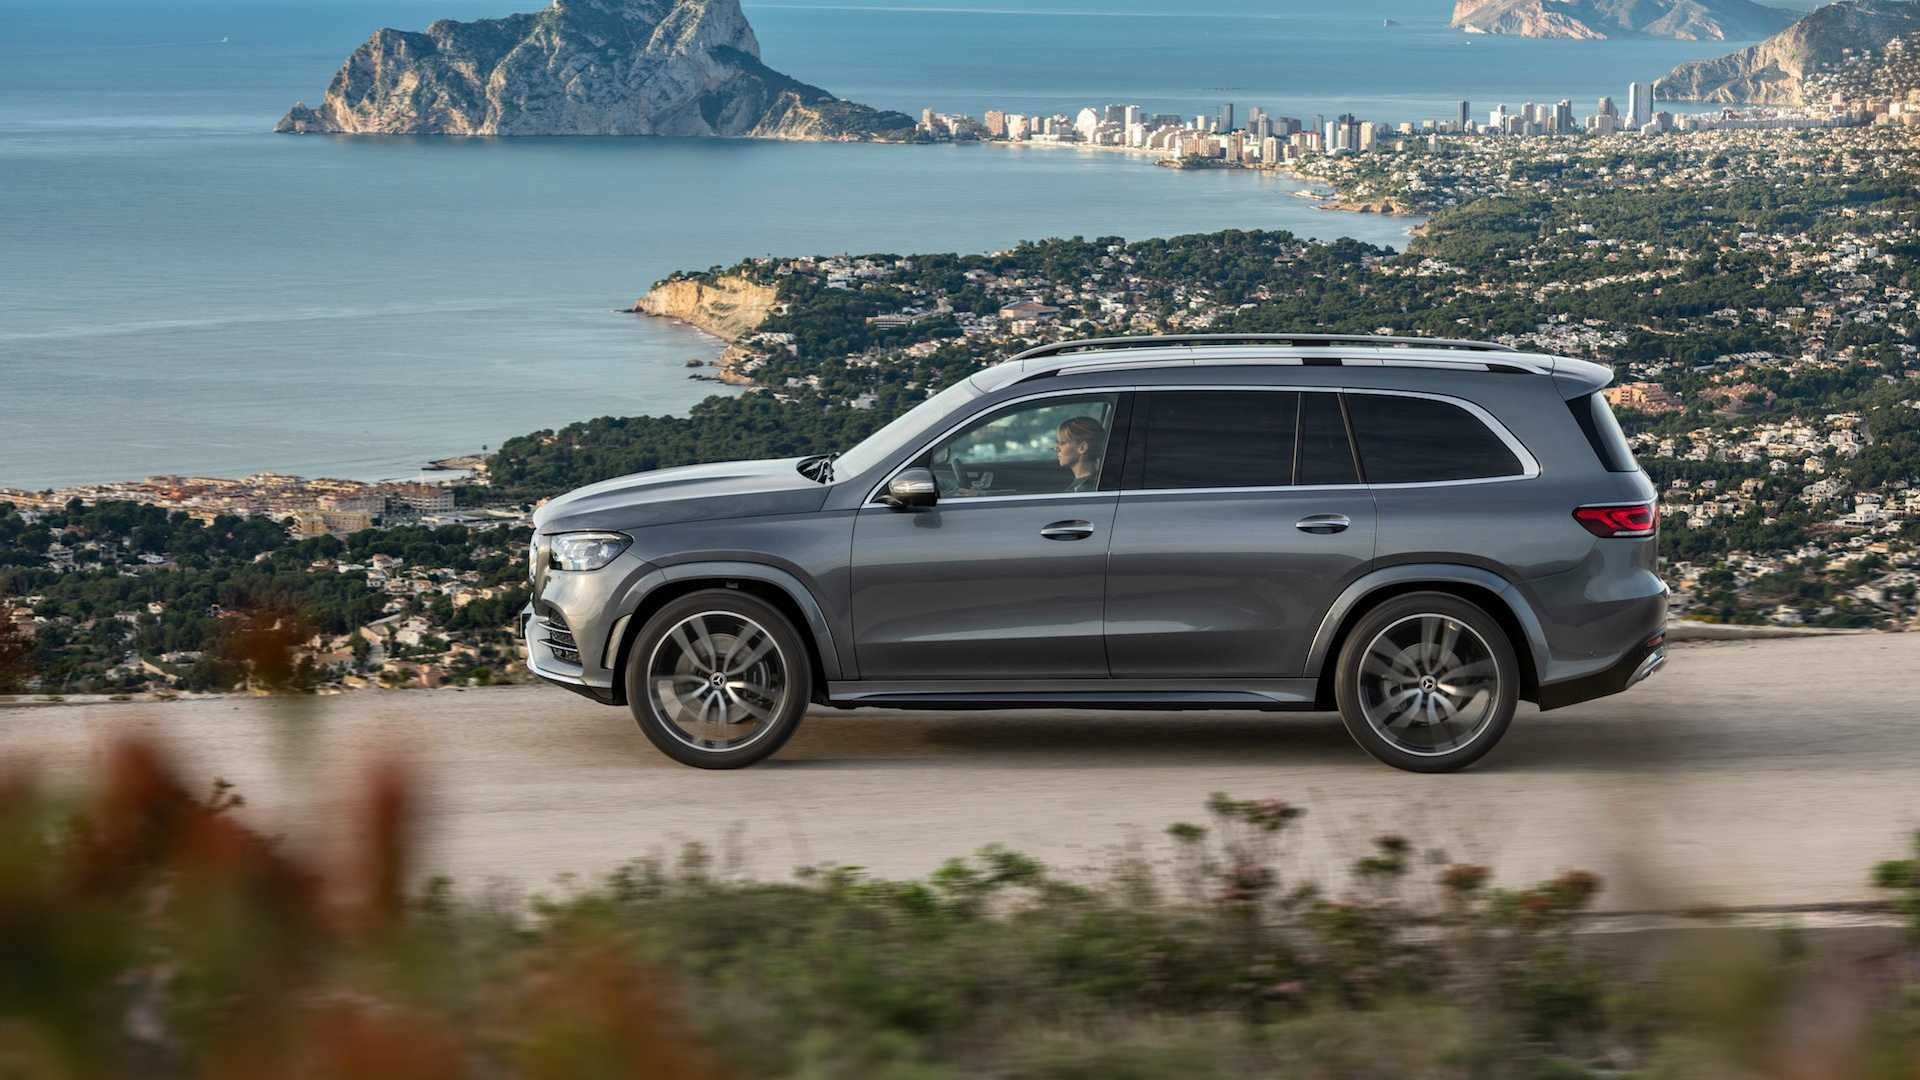 Mercedes-Benz GLS (2020)